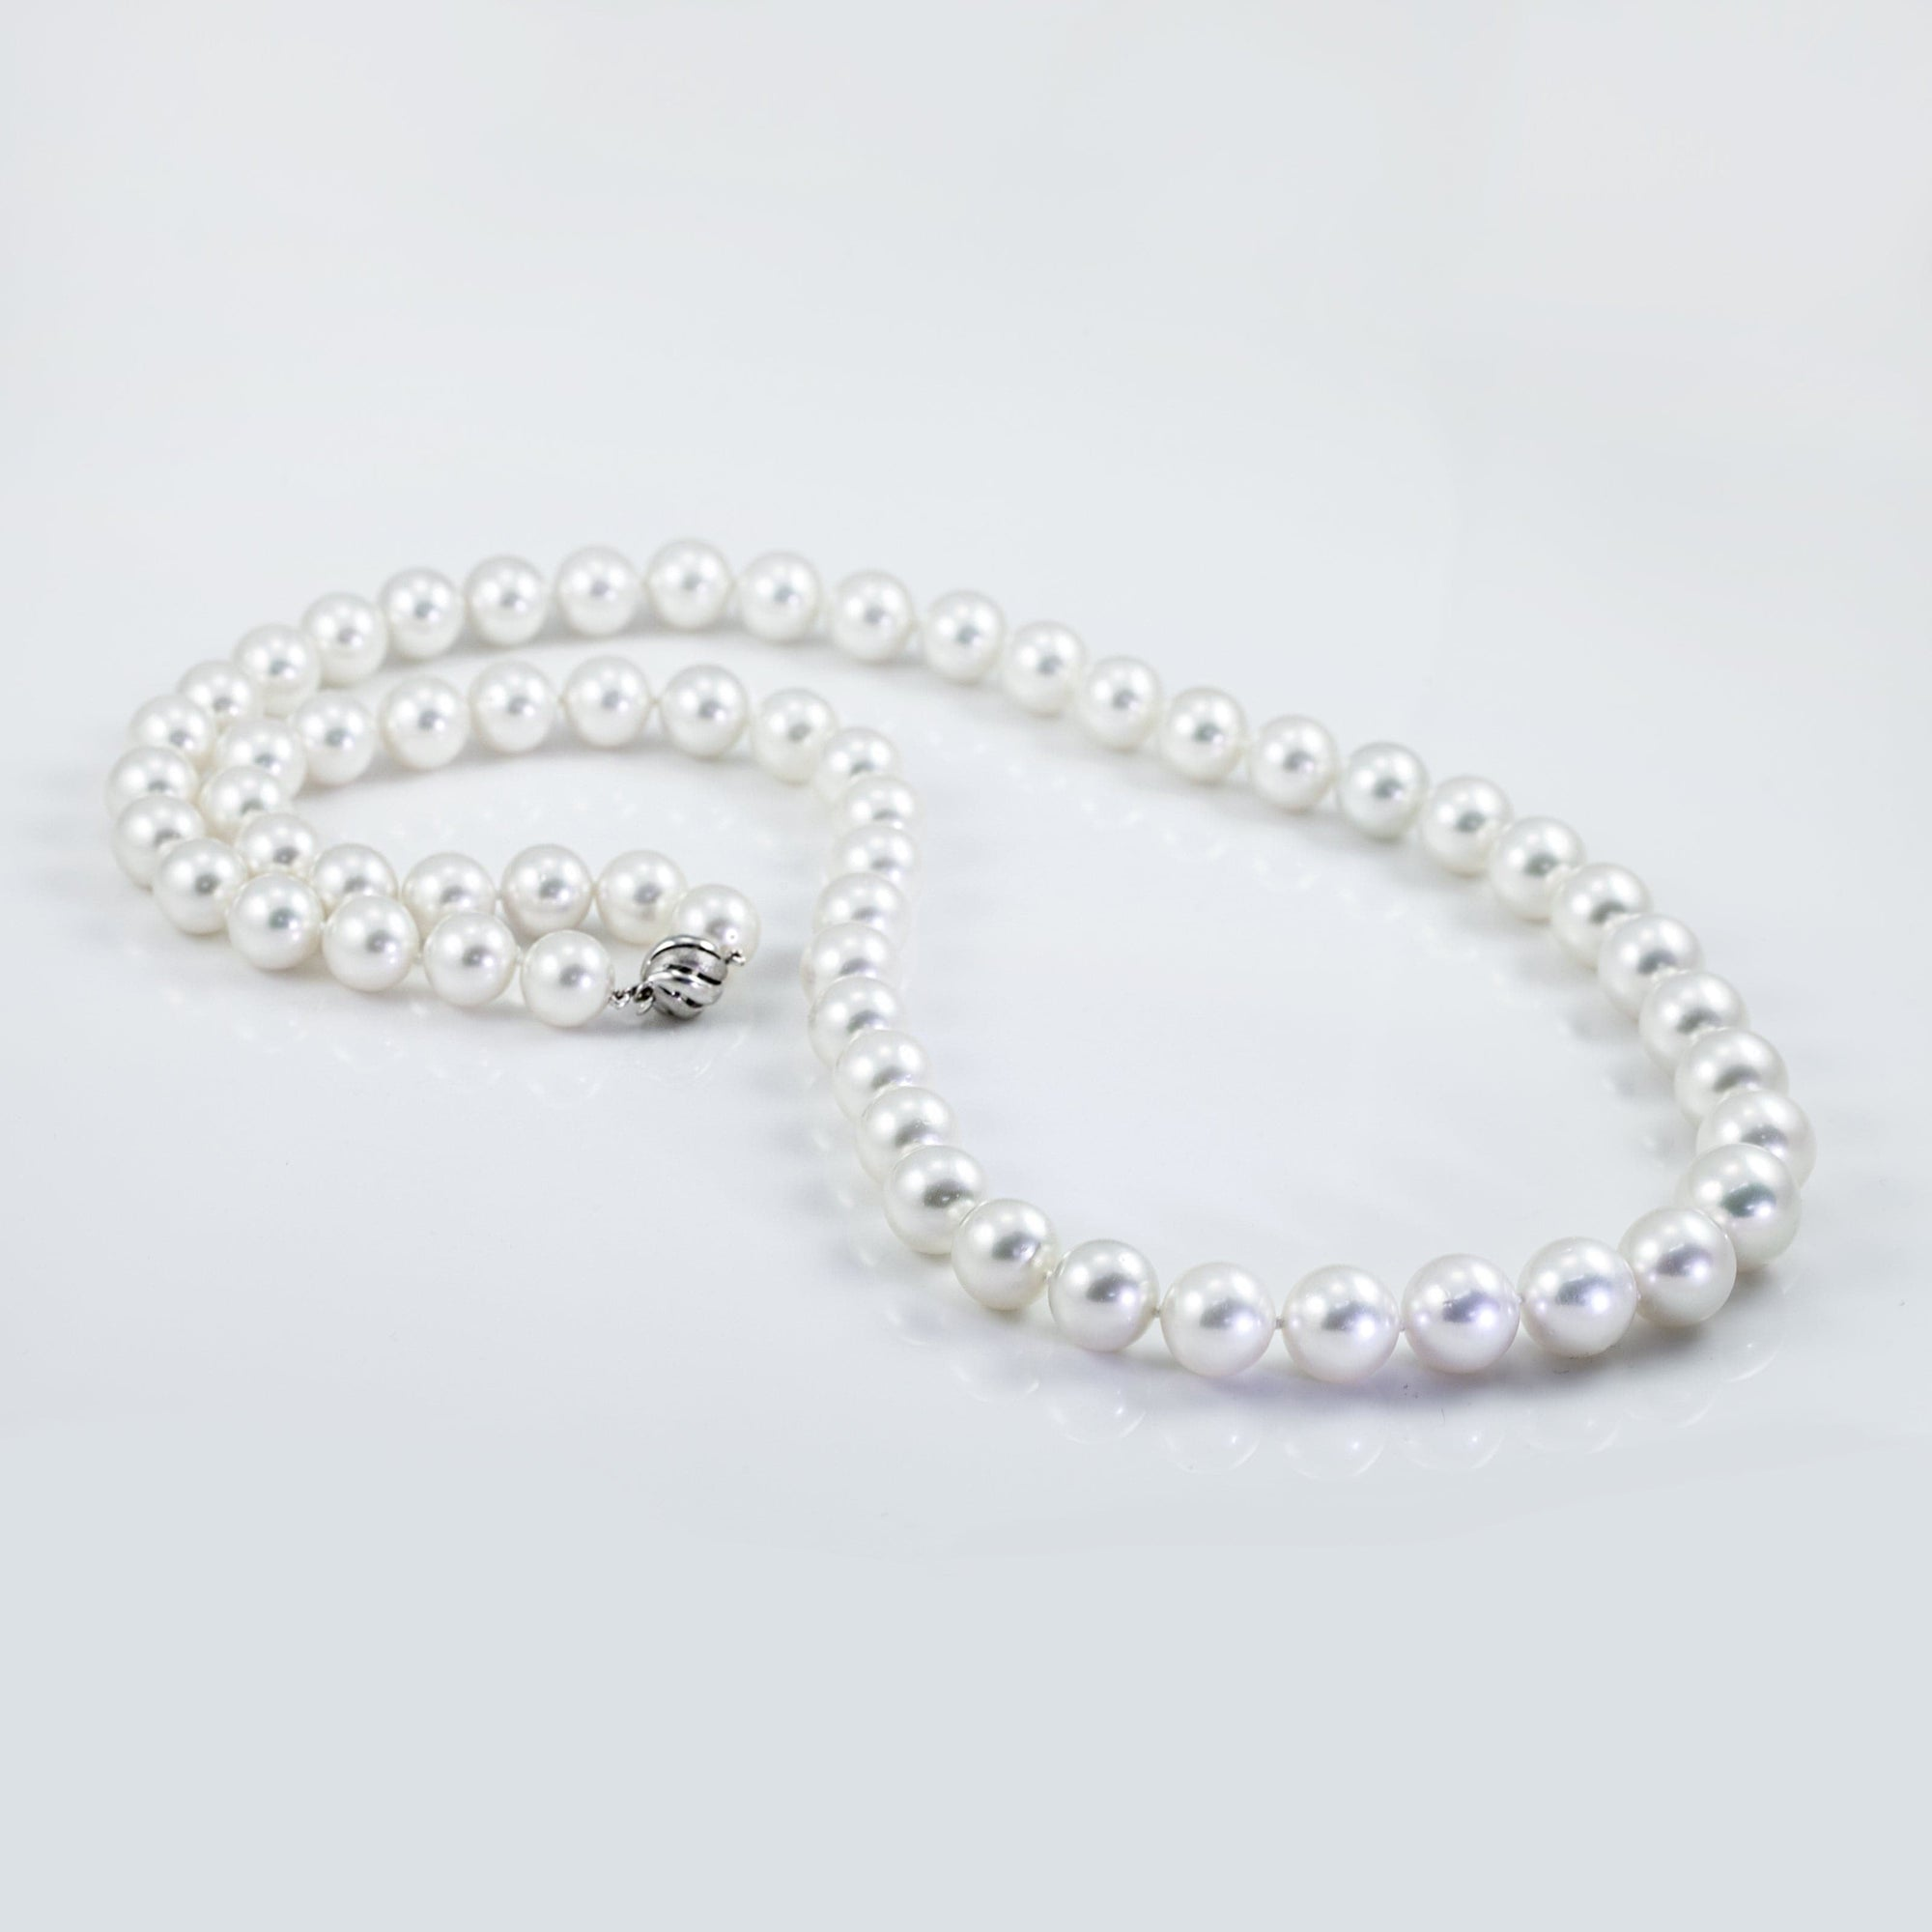 Graduated South Sea Pearl Necklace, 32 Inches